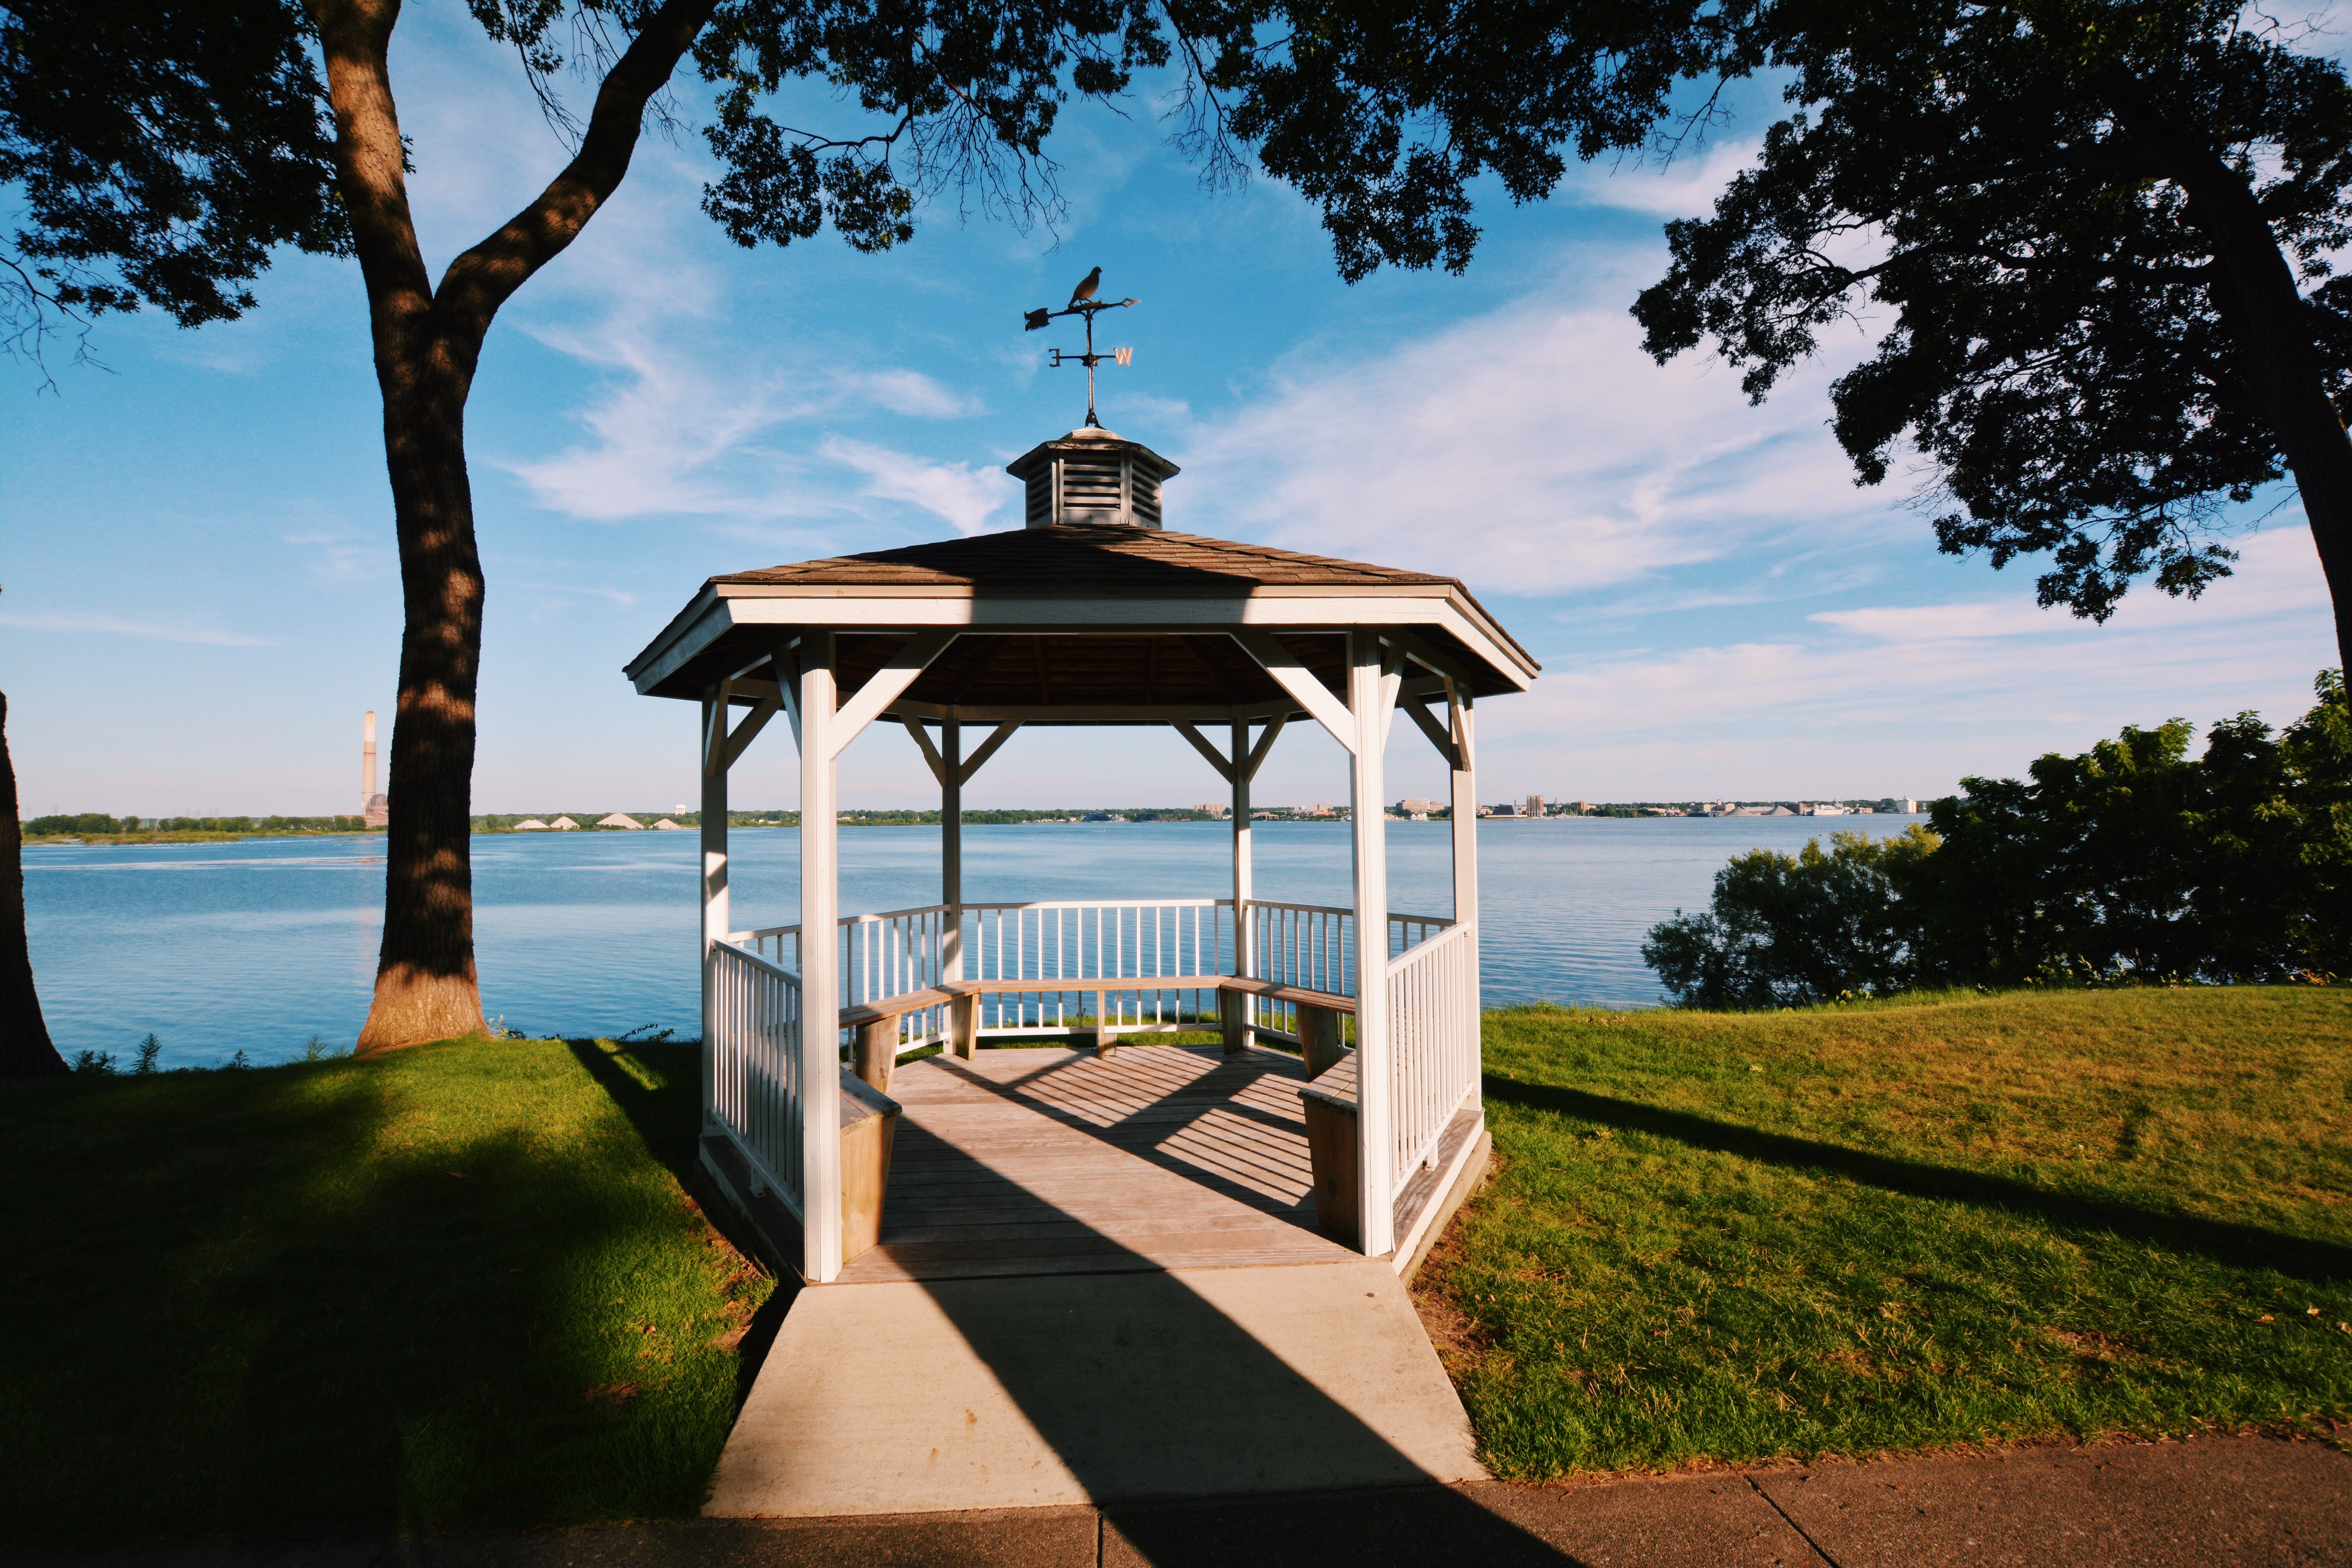 Gazebo on Muskegon Lake